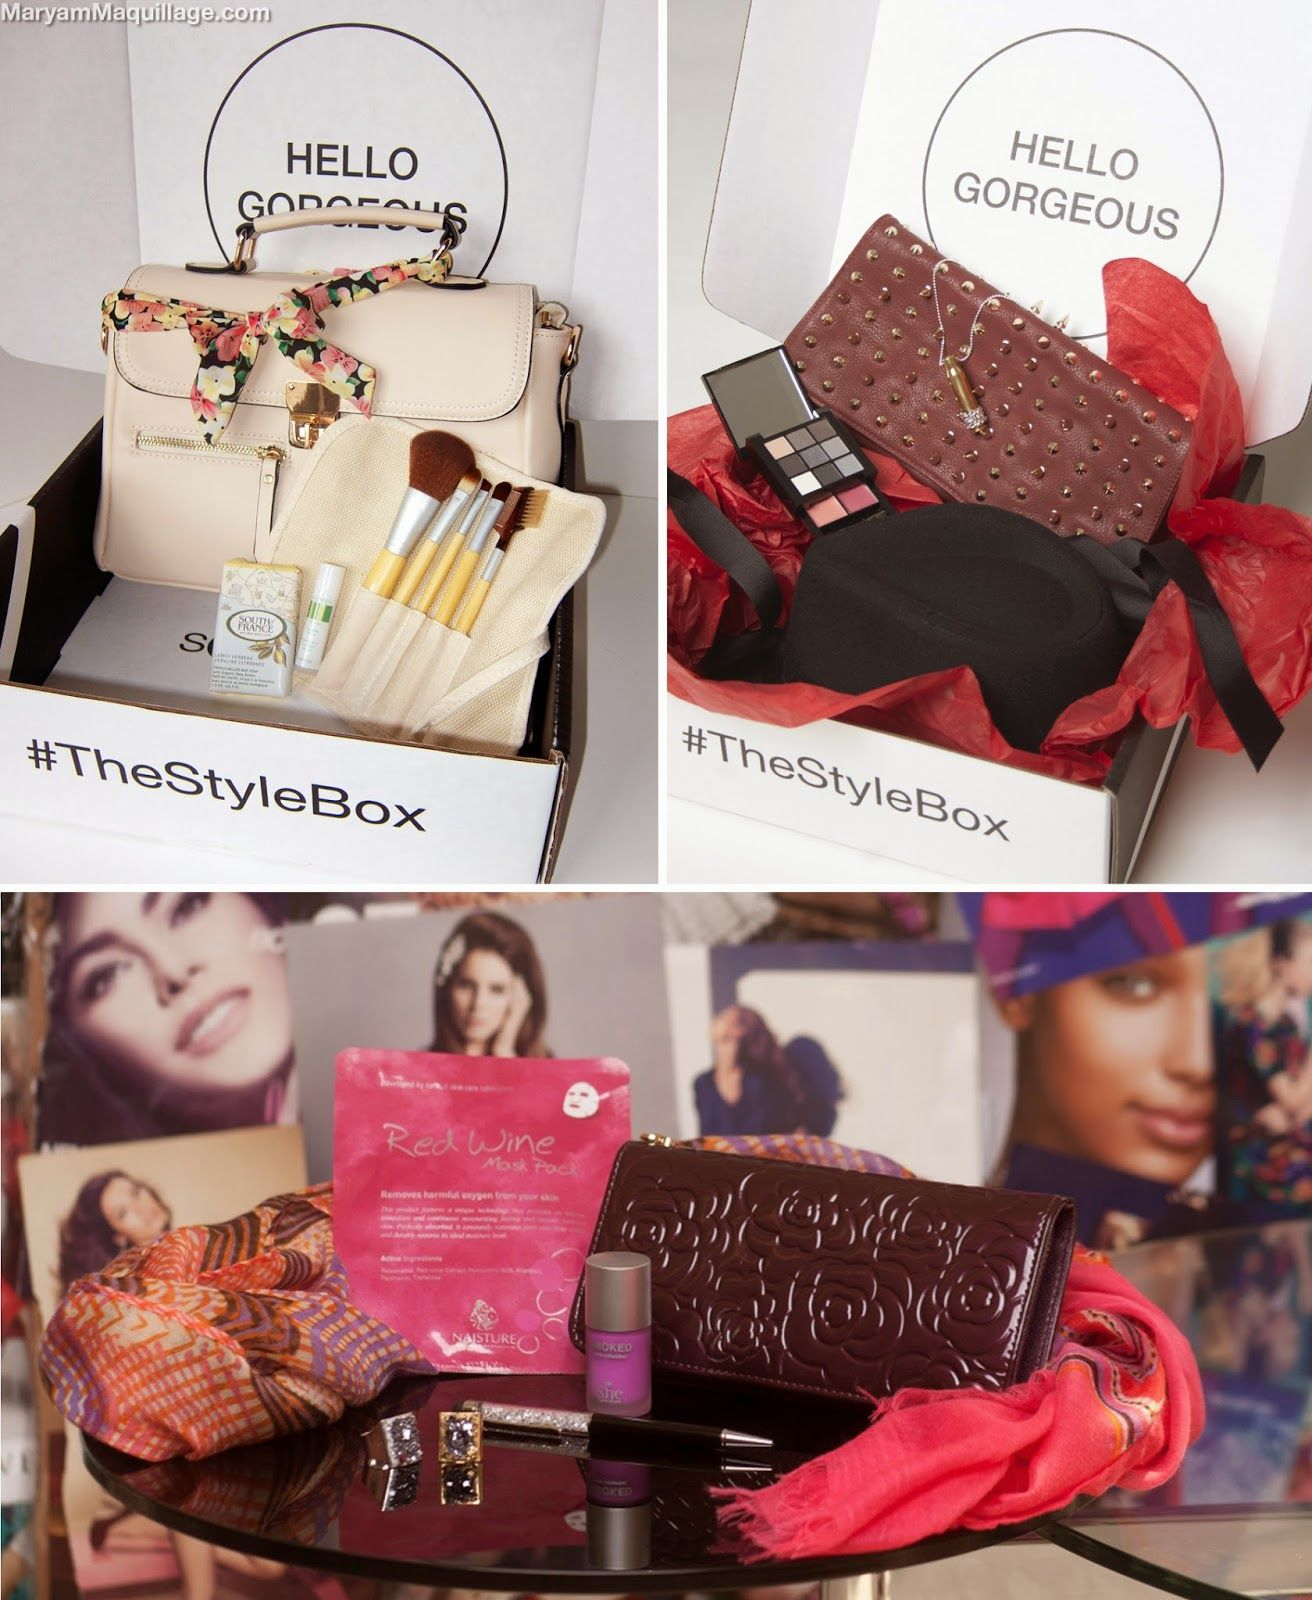 The Style Box by Socialbliss $39.95 or less a month, over $120 value!!